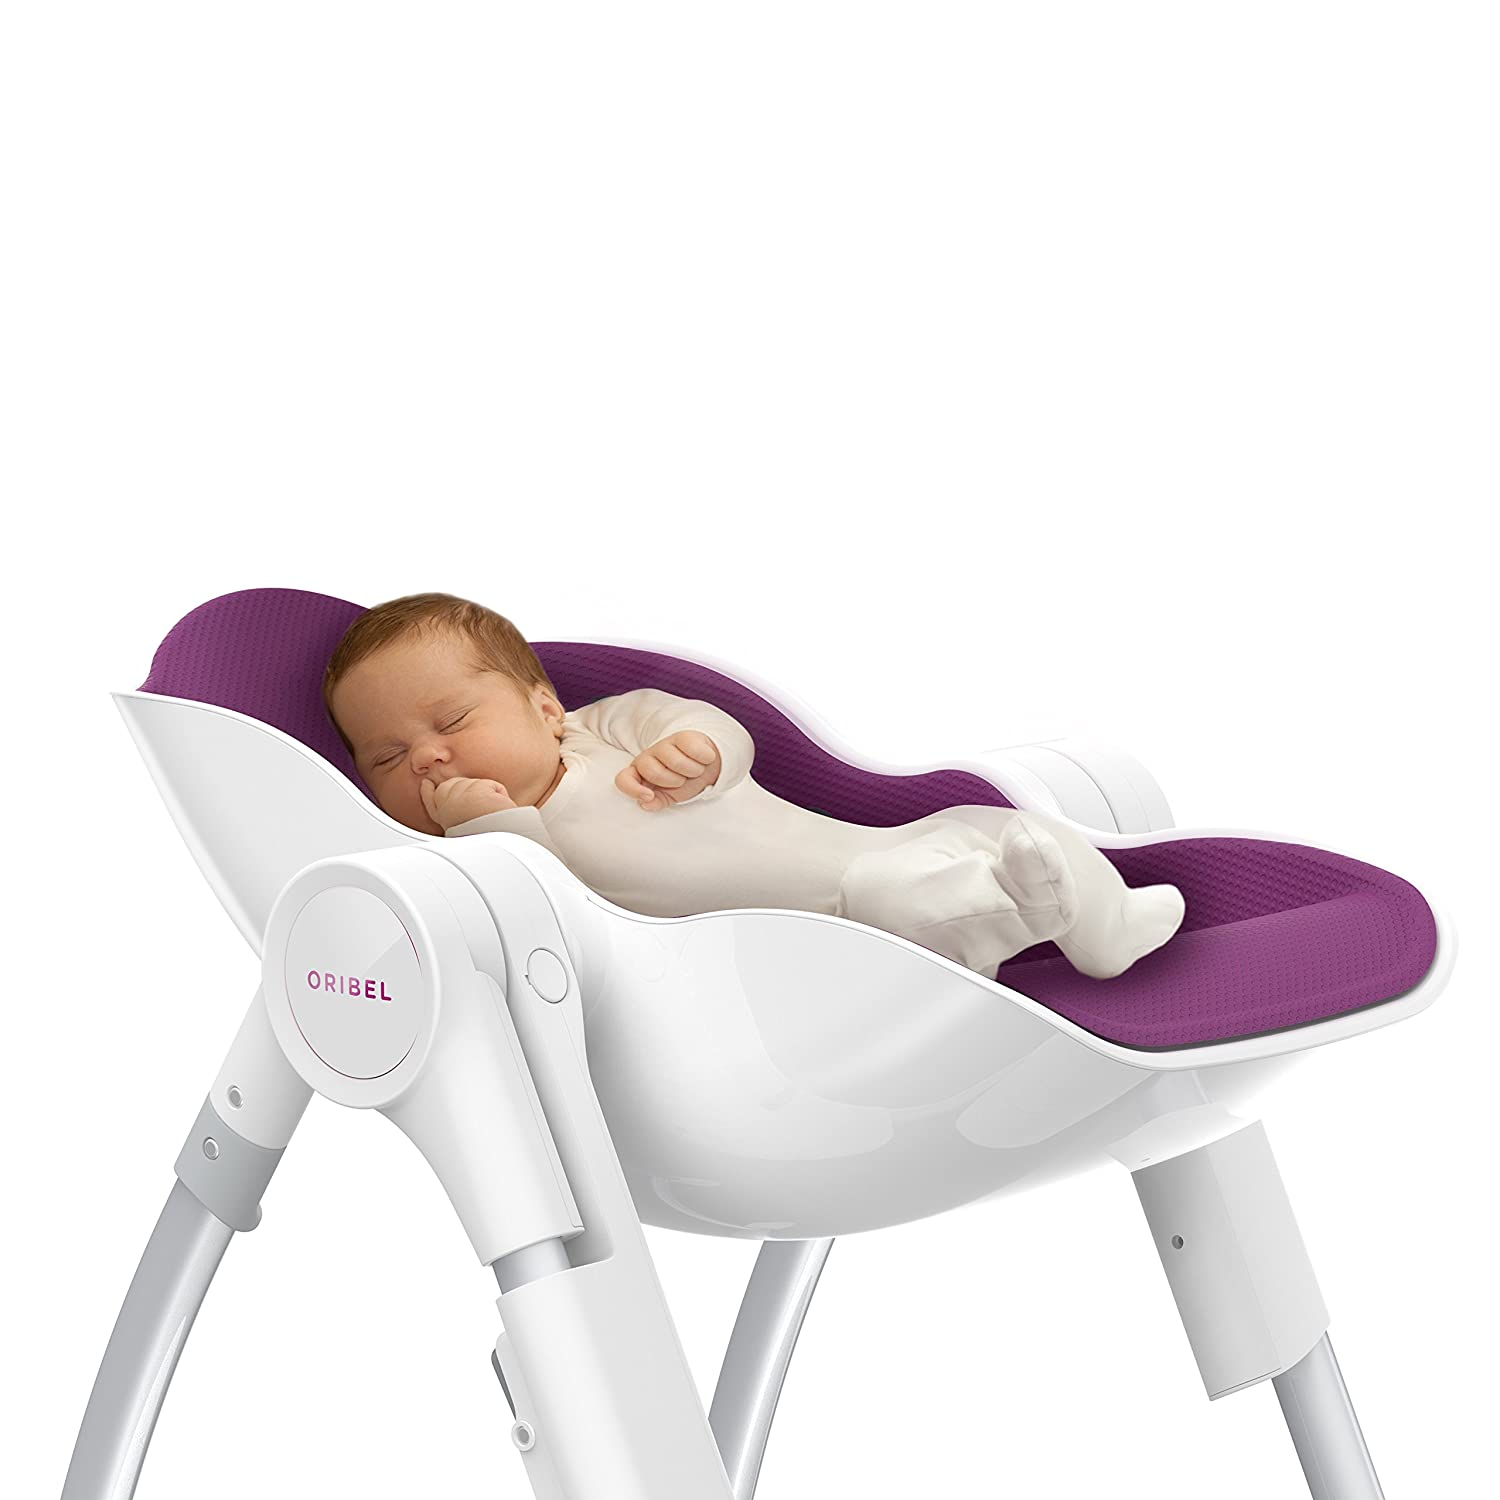 Oribel Cocoon High Chair, Plum OR201-90001